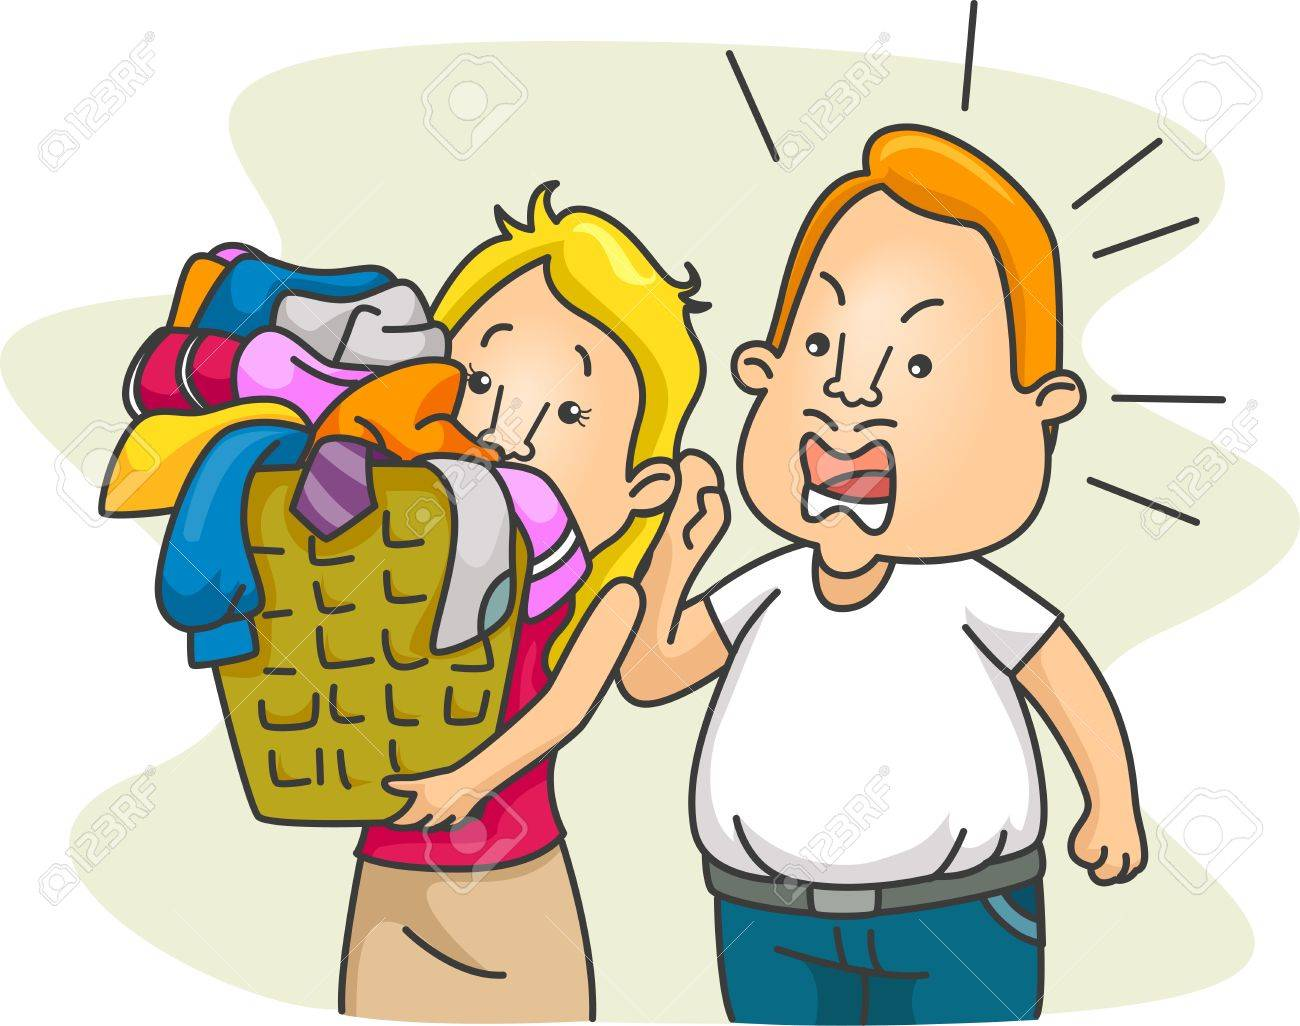 How to deal with a nagging husband